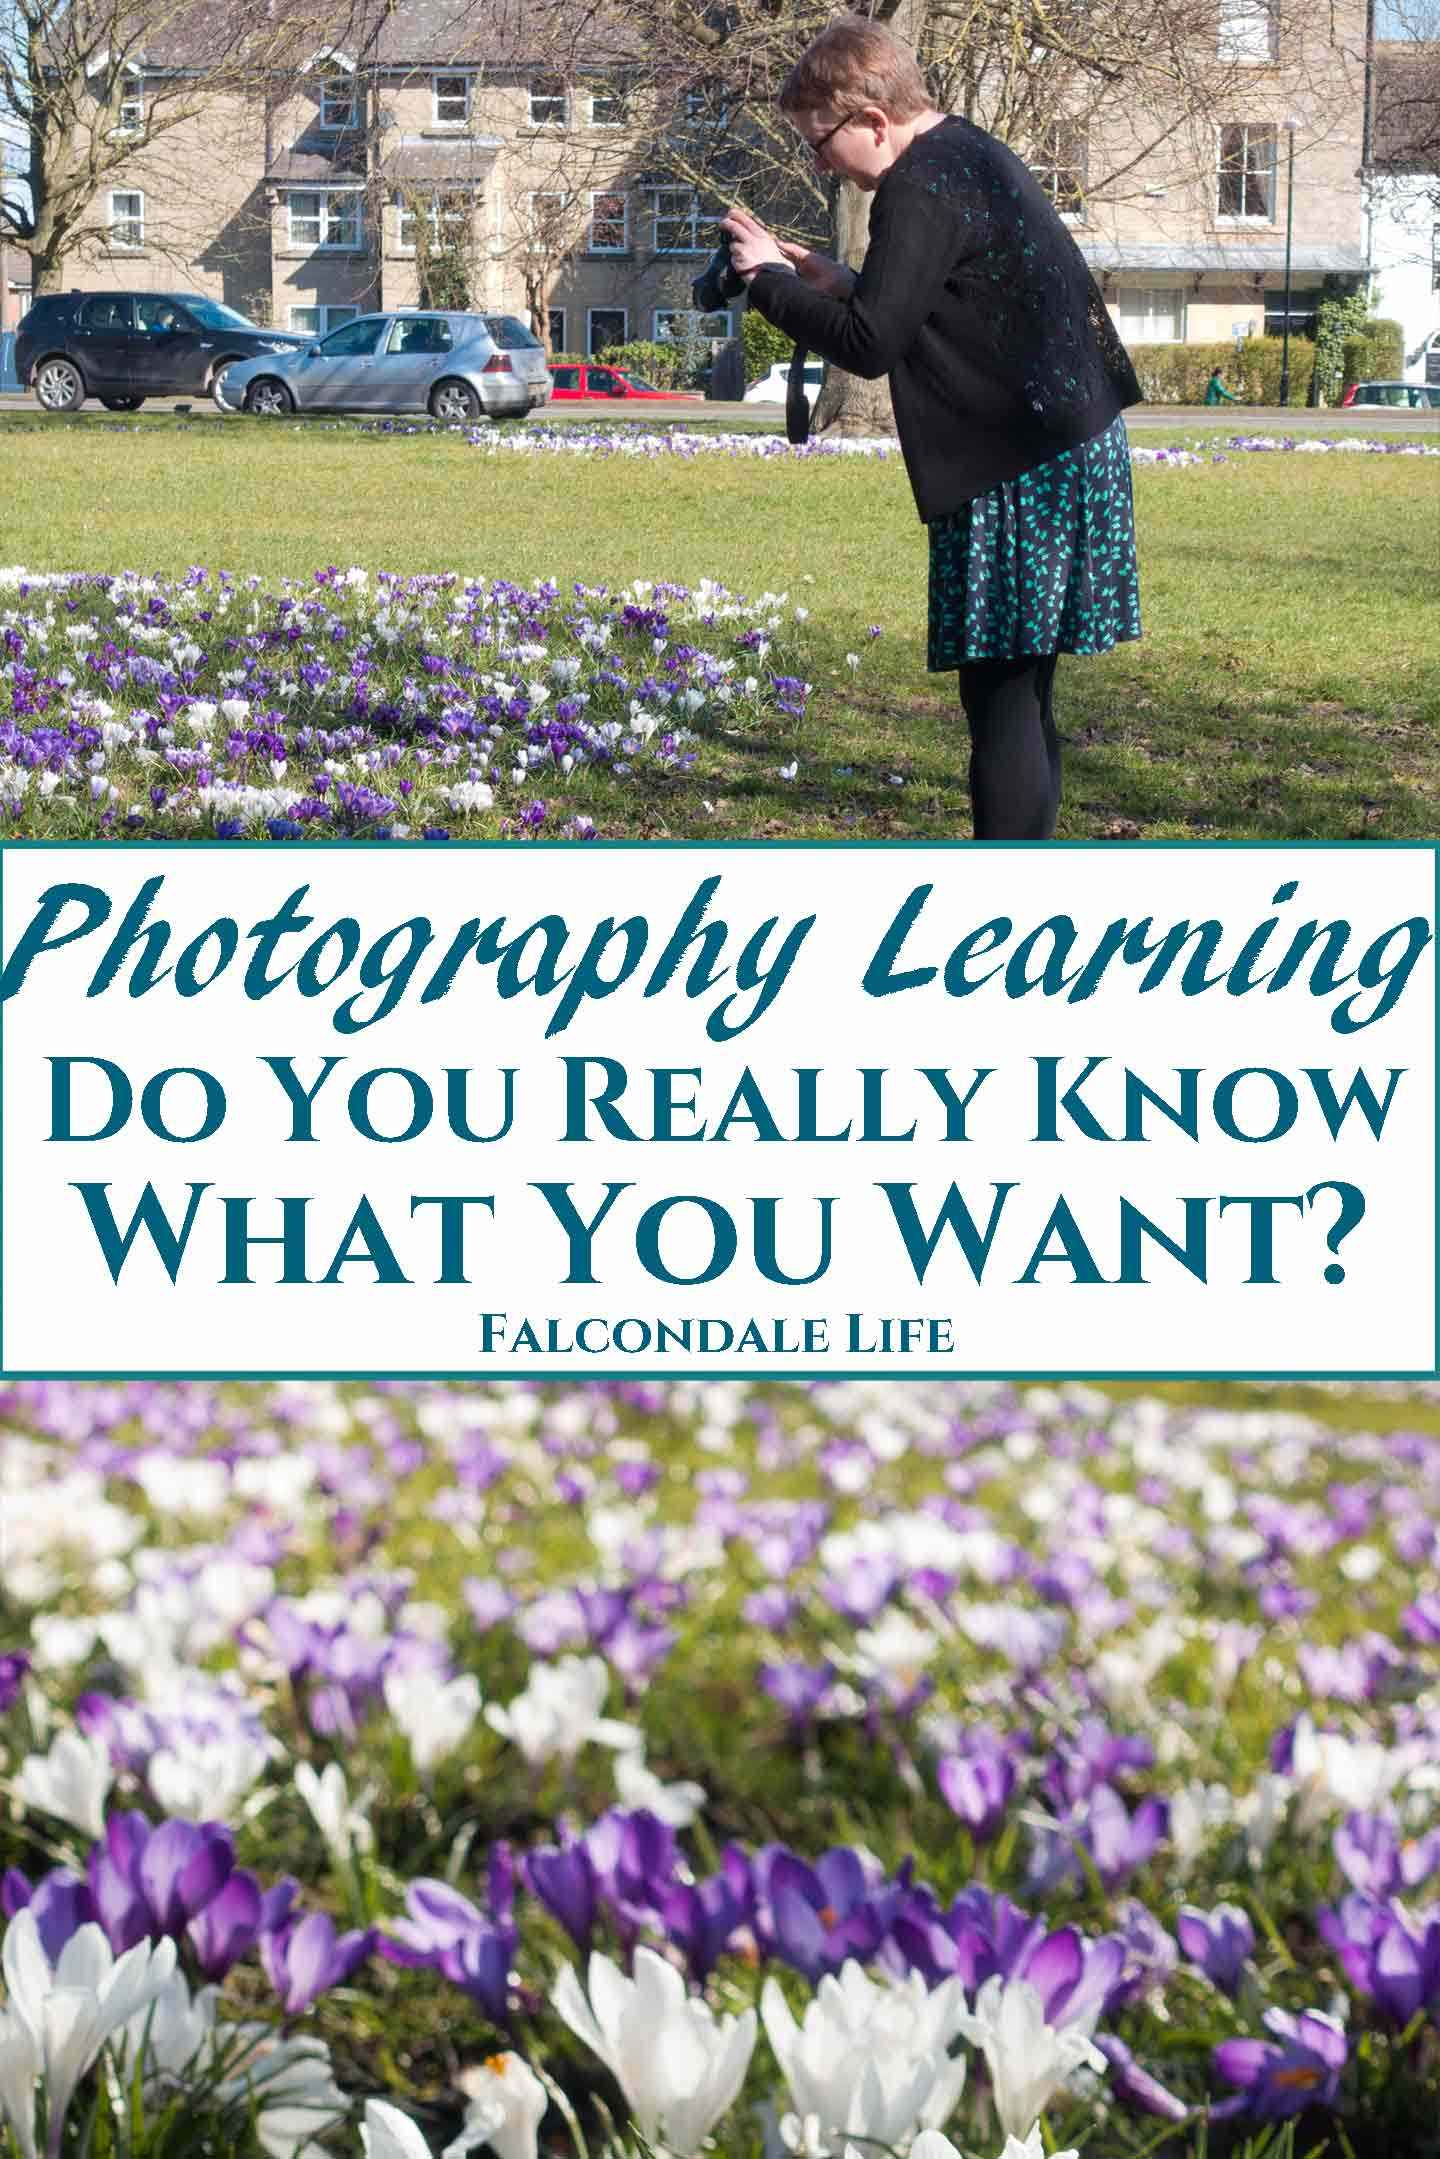 Photography Learning - Do you really know what you want? On Falcondale Life blog. I've been learning to teach photography. Your photography learning is as individual as you are. There is no rigid order in which you have to learn things. Learn to take your every day photos really well, so they have more lasting appeal. With FalcondaleJan. Image description - woman takes photos of crocuses and blog title